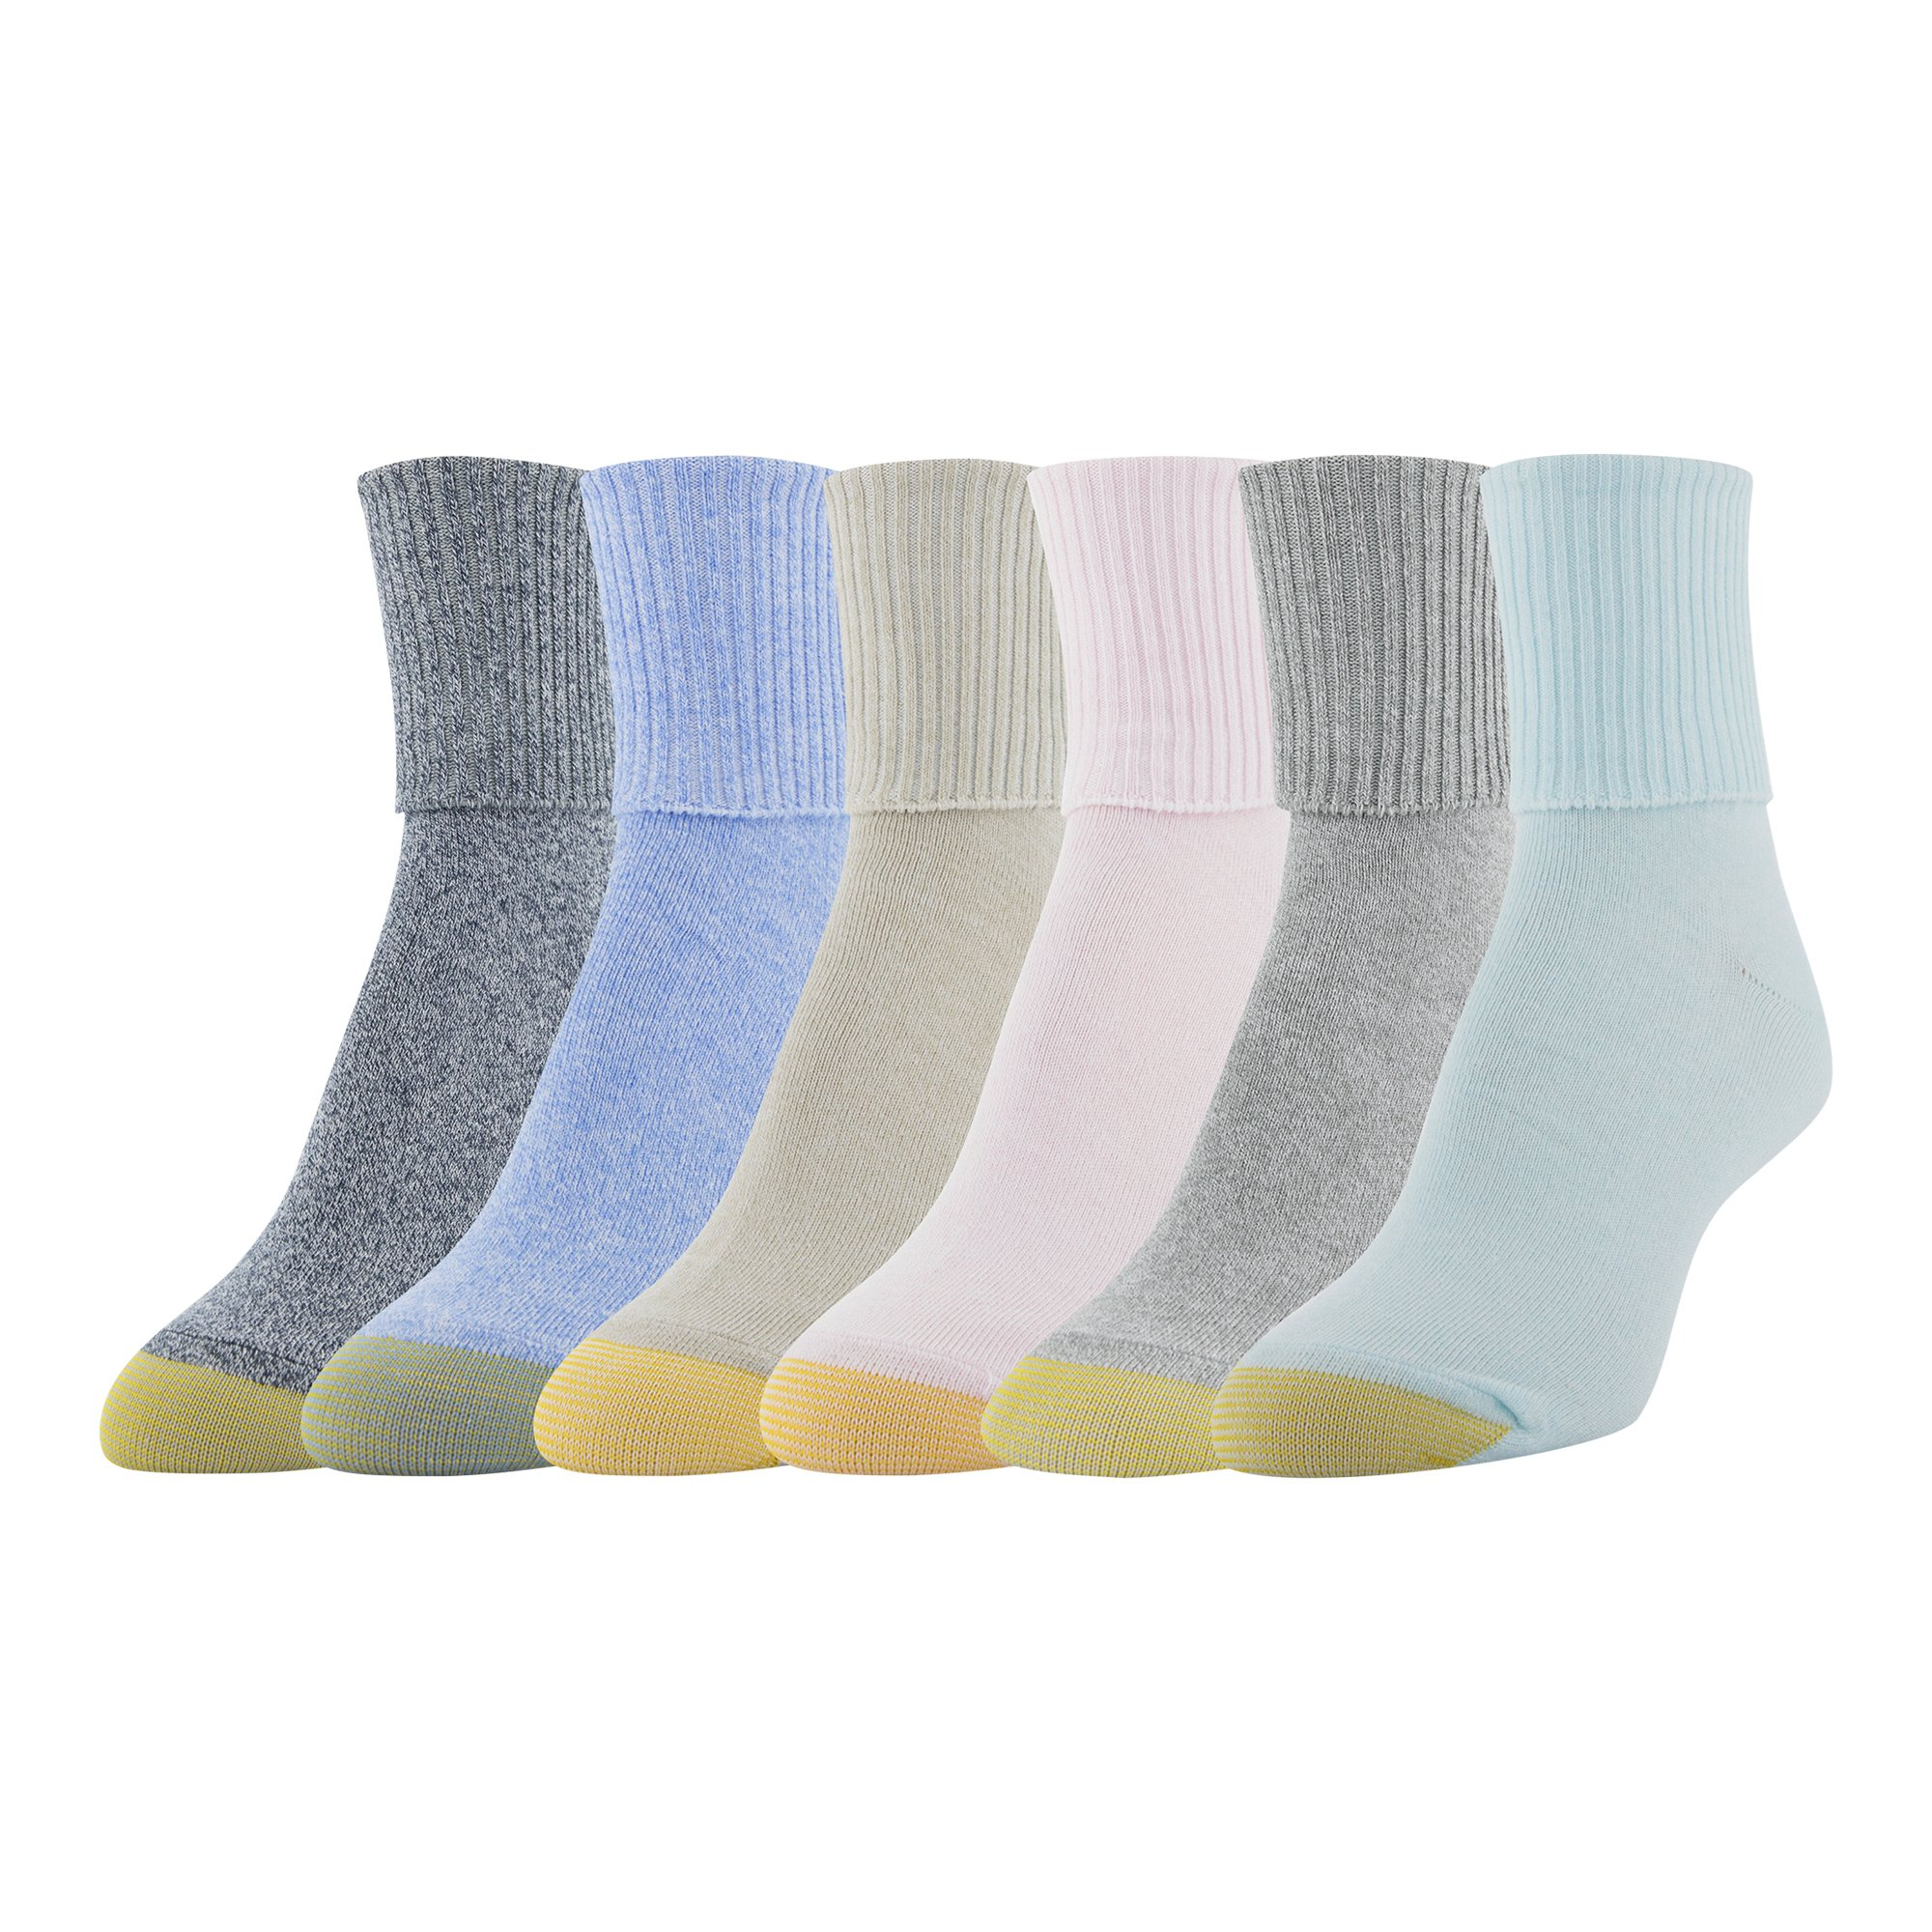 Gold Toe Women's 6-Pack Turn Cuff Sock Blue Mix Shoe Size 6-9/Sock Size 9-11